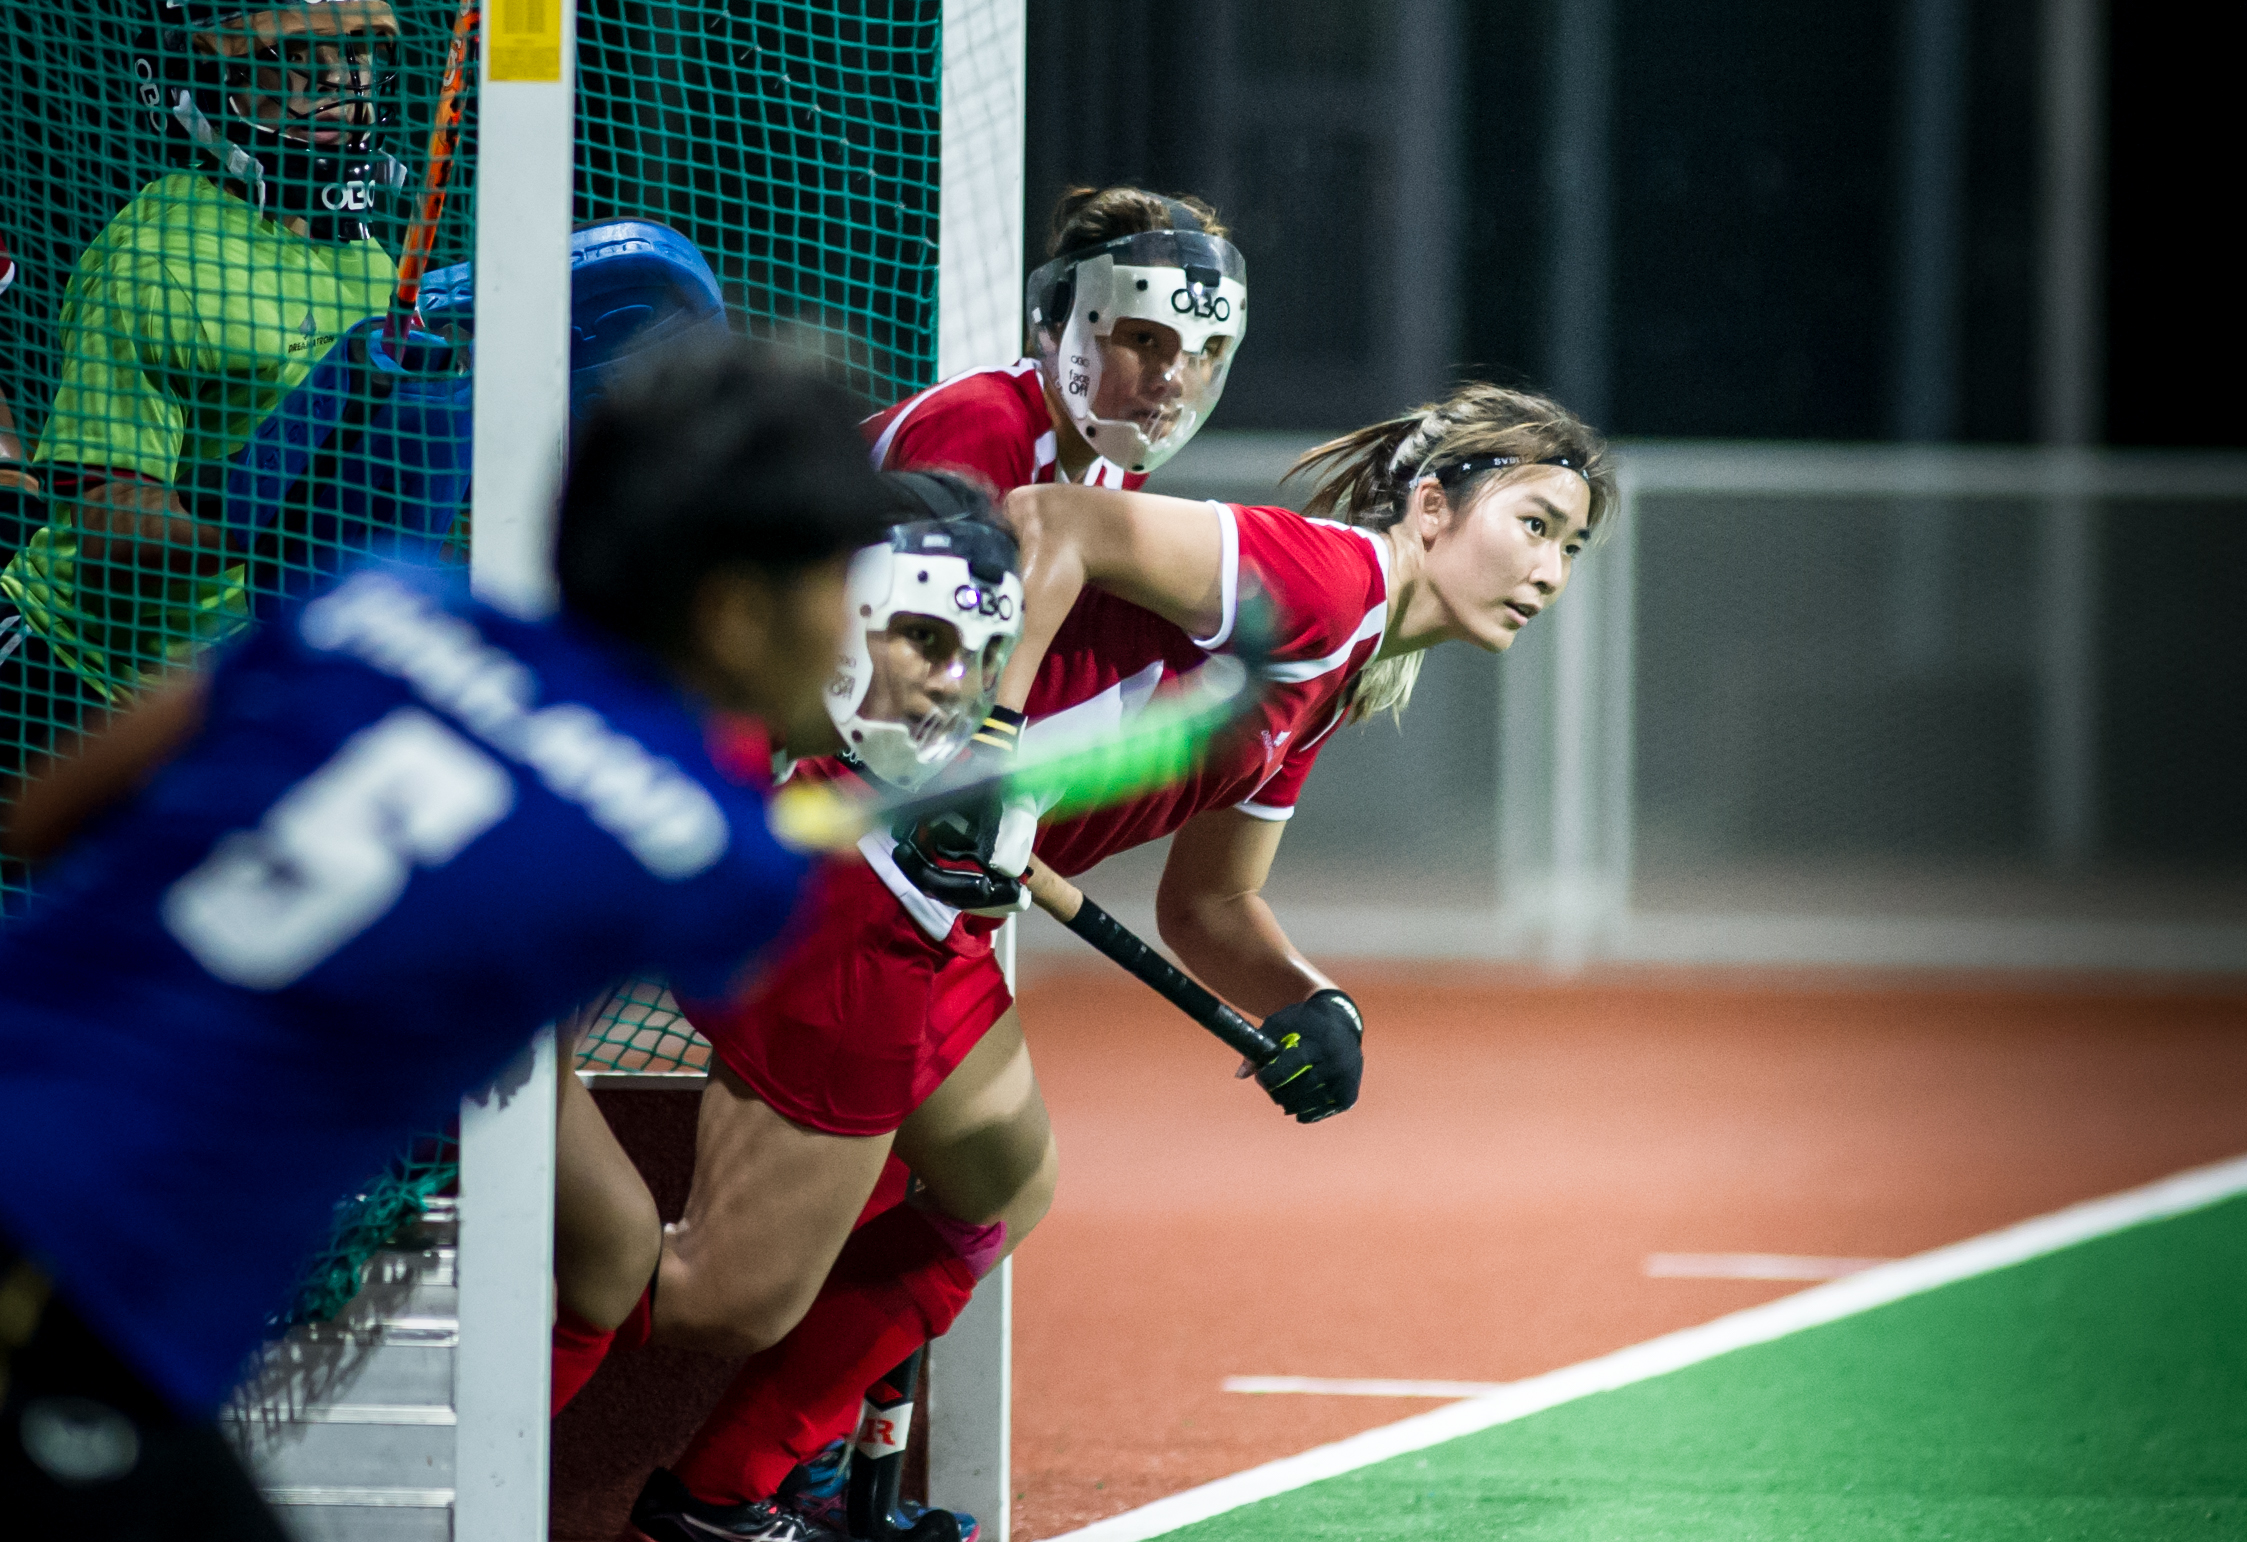 A Singaporean player rushes out of the goal as a Thai player takes a corner penalty during a World Hockey League match at the Sengkang Sports Complex.